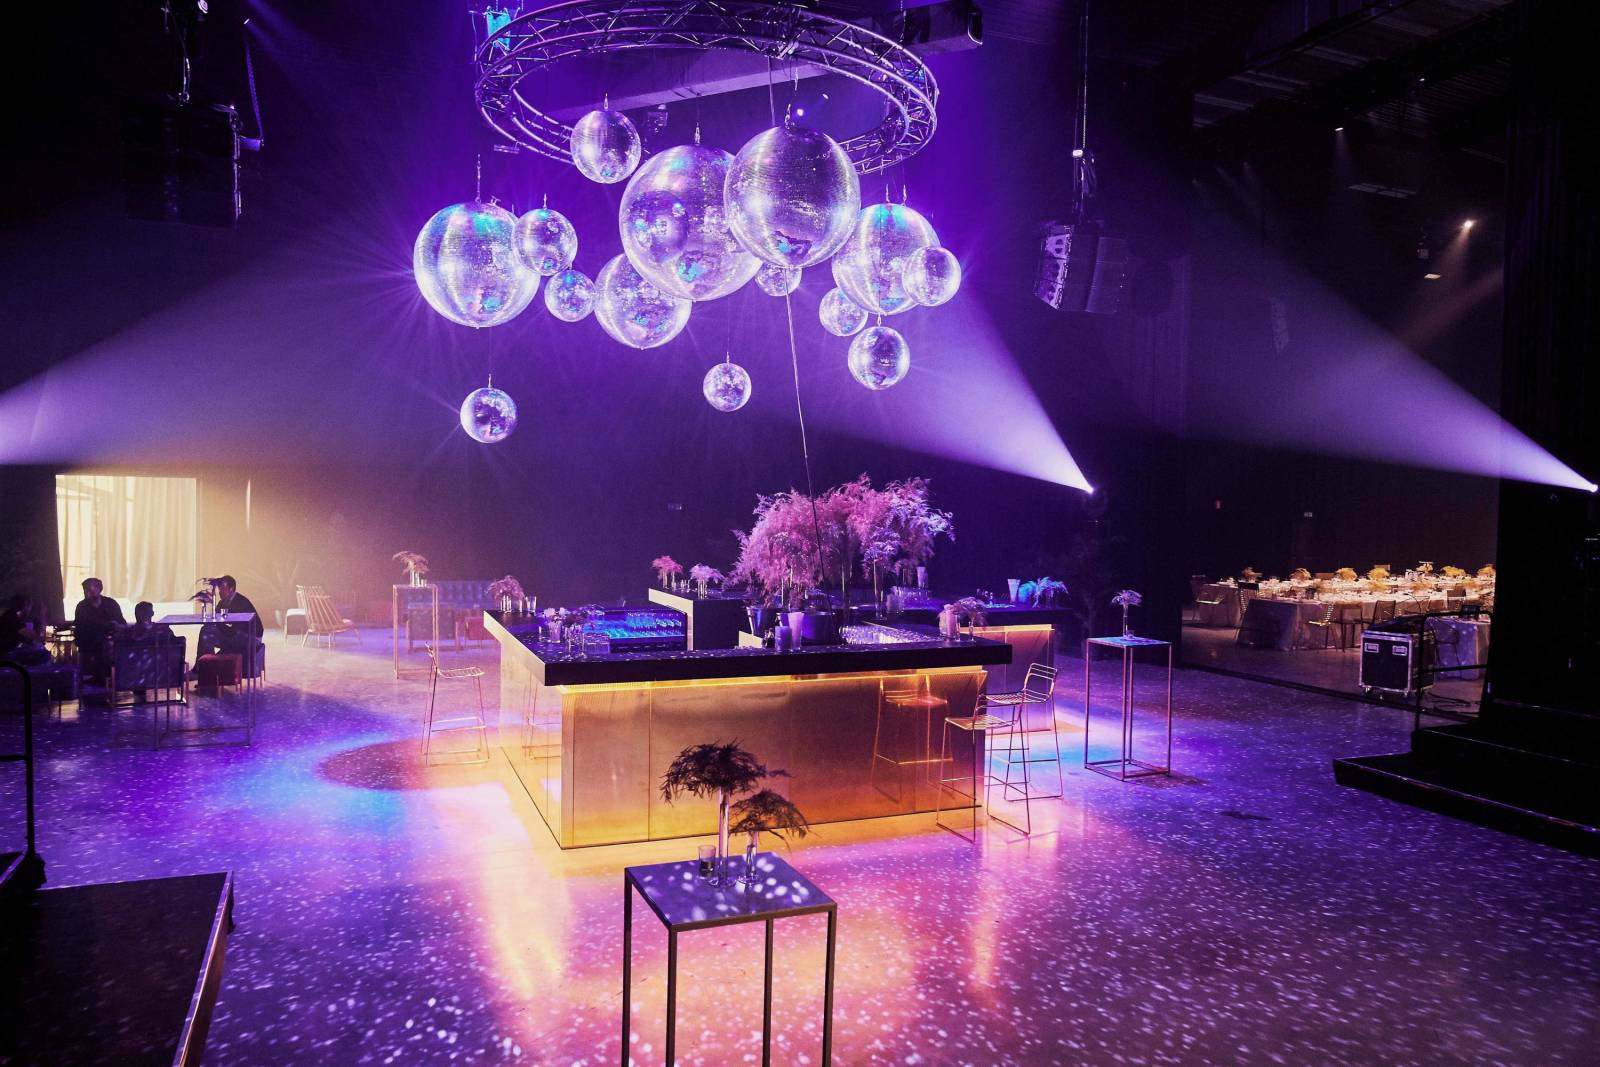 Docks Dome - Eventlocatie - Feestzaal - Brussel - House of Events - 24